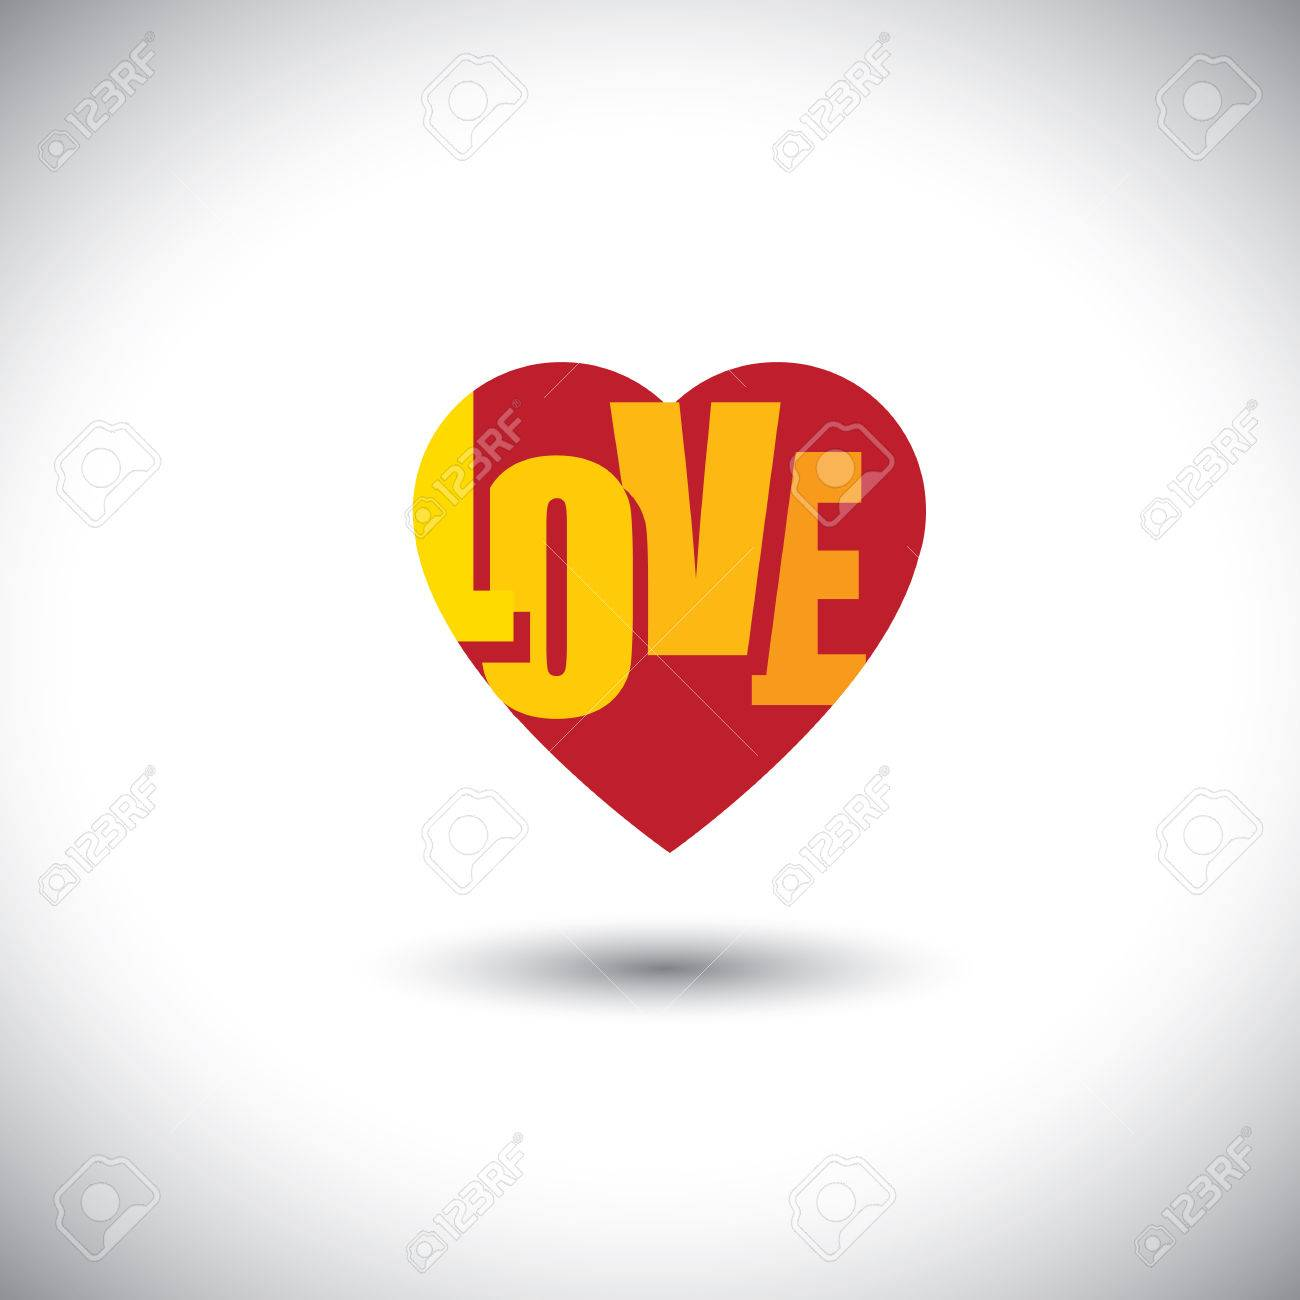 Human Heart Icon And Love Words Inside It Simple Vector Graphic This Has The